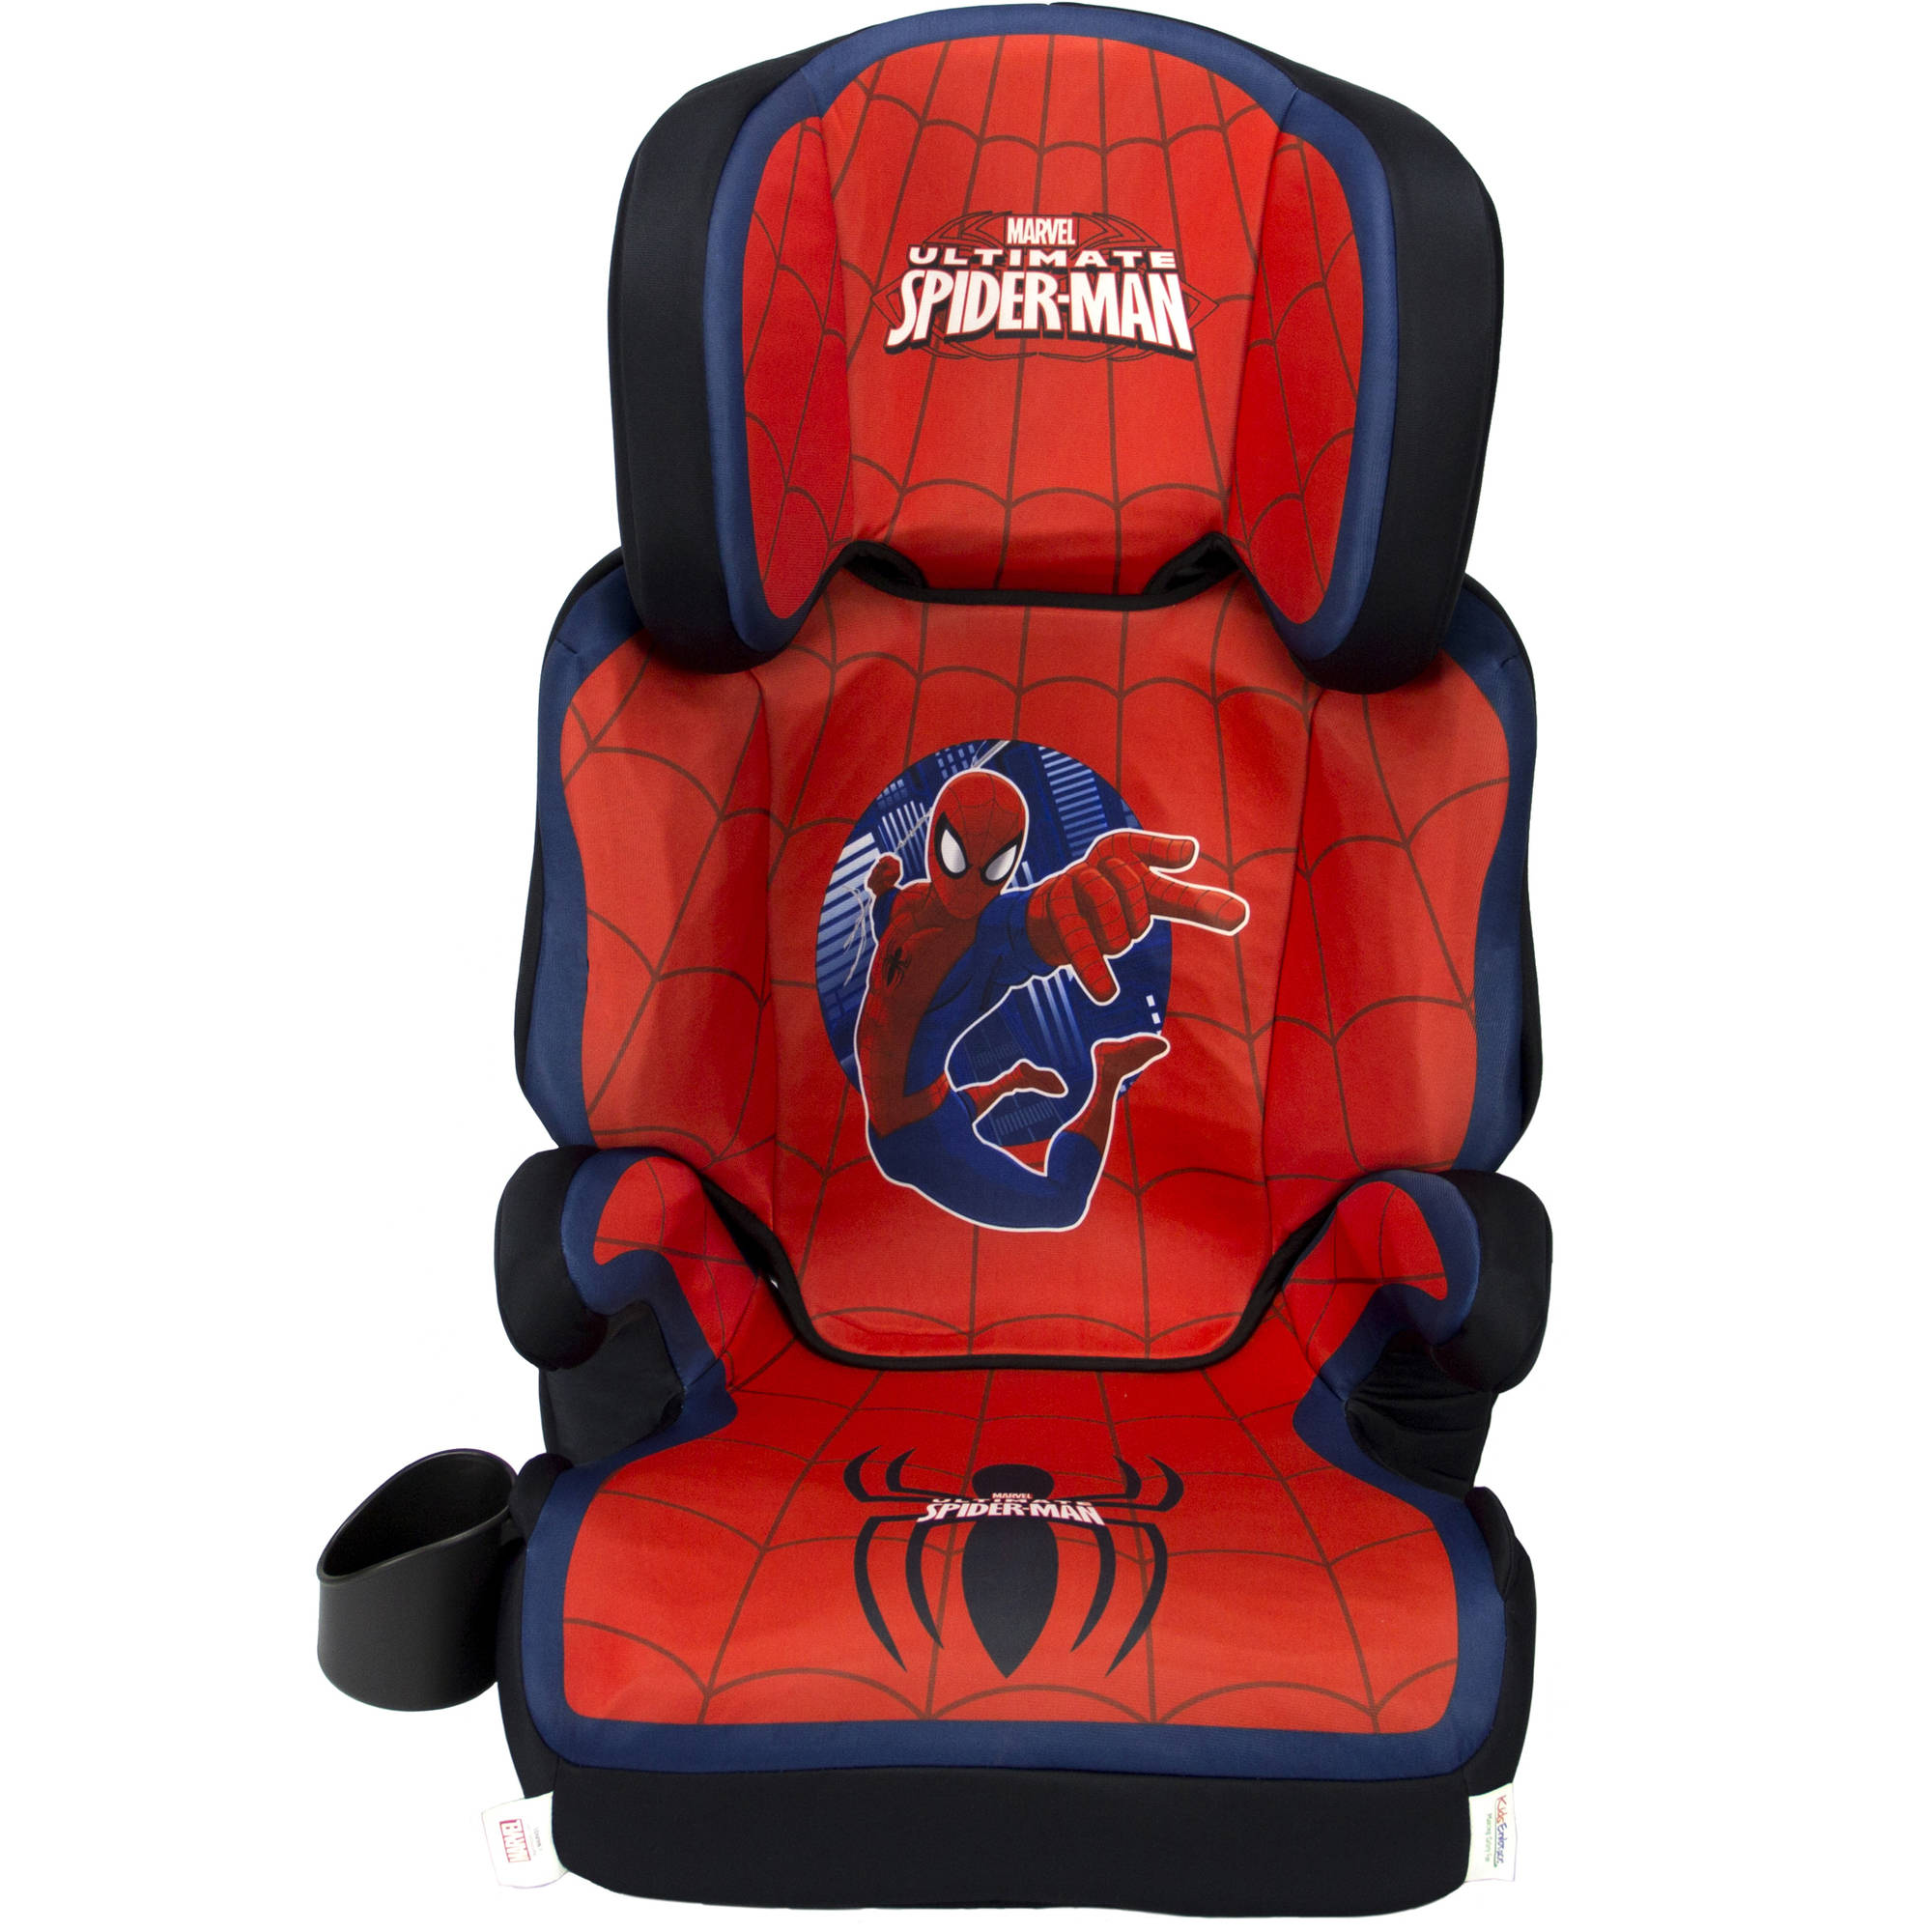 KidsEmbrace Fun-Ride Booster Car Seat, Ultimate Spider-Man